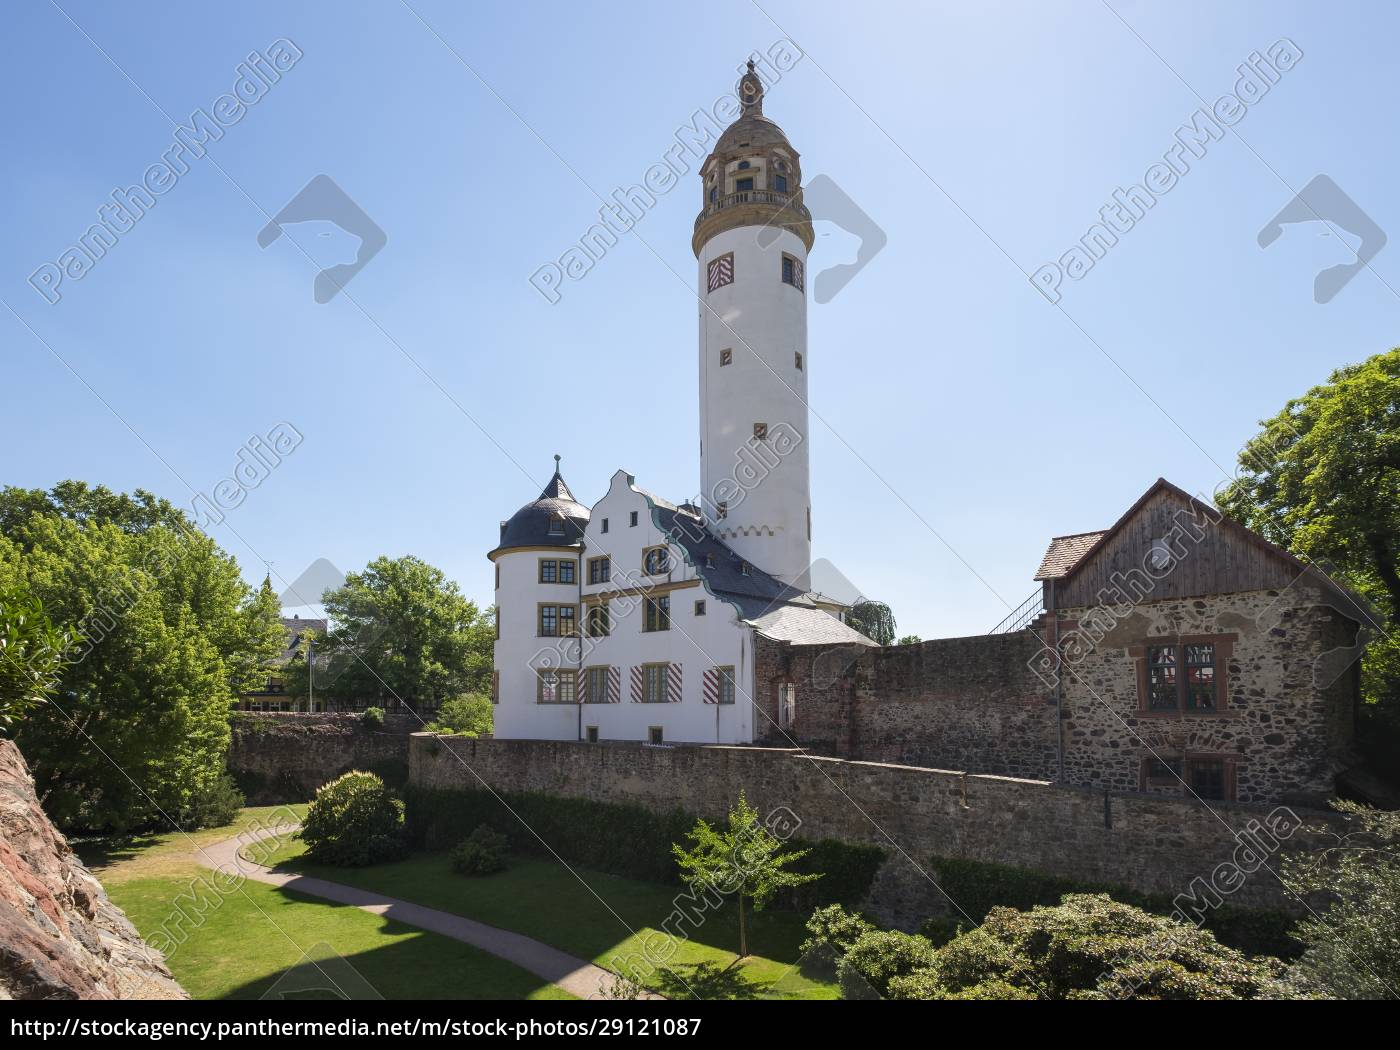 germany, , hesse, , frankfurt-hoechst, , old, castle - 29121087